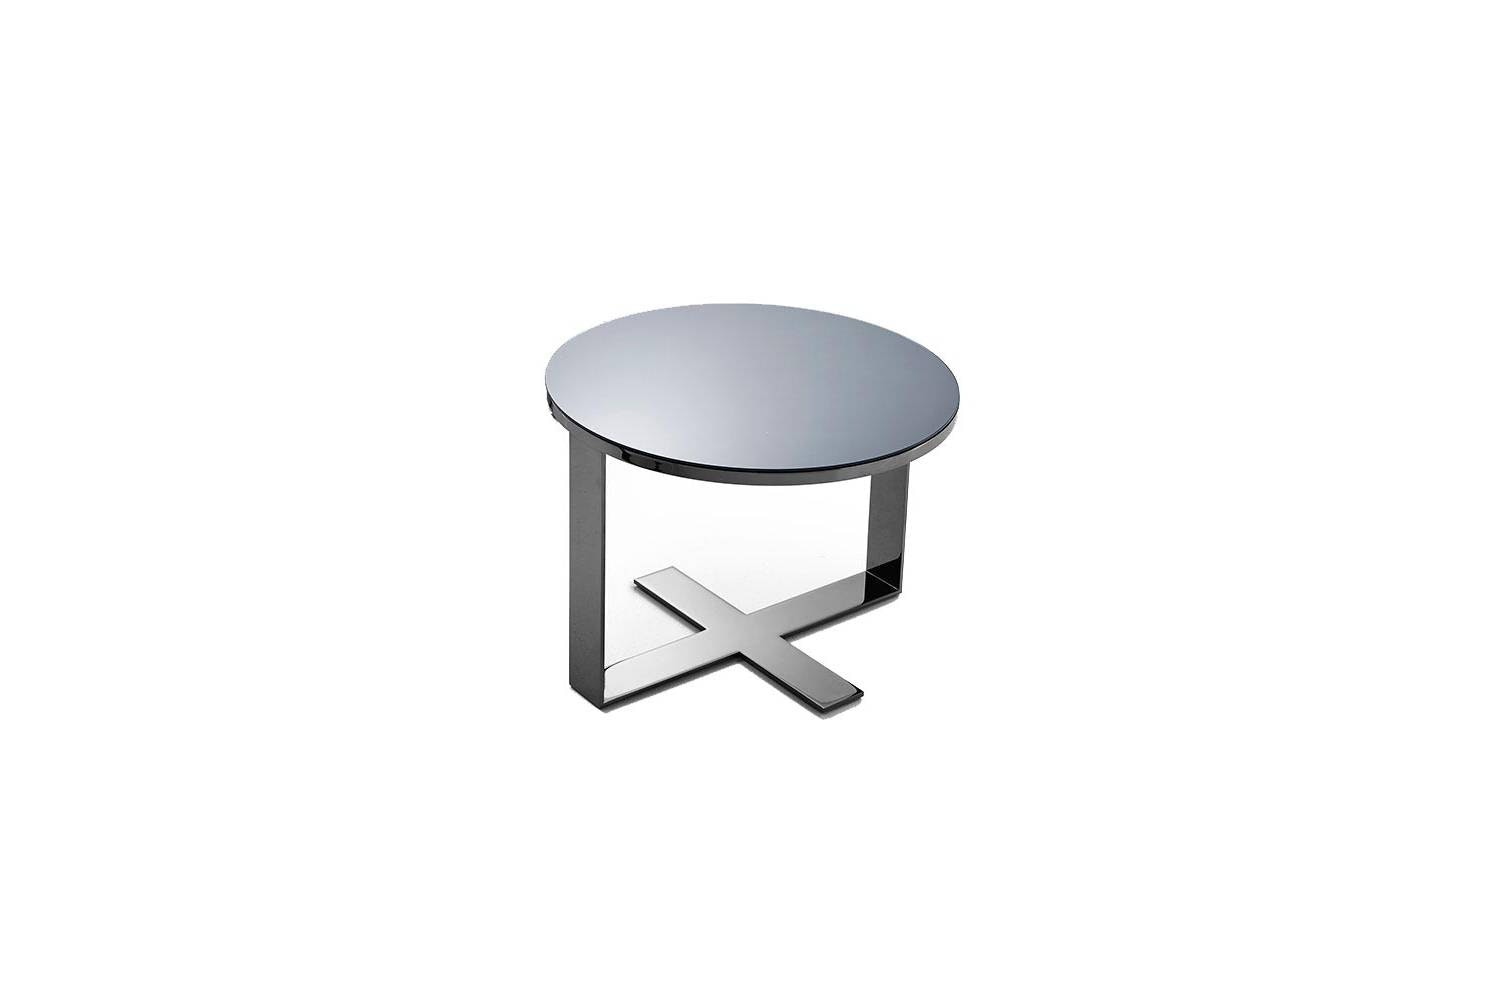 Eileen Side Table in Bronzed Reflective Glass by Antonio Citterio for B&B Italia